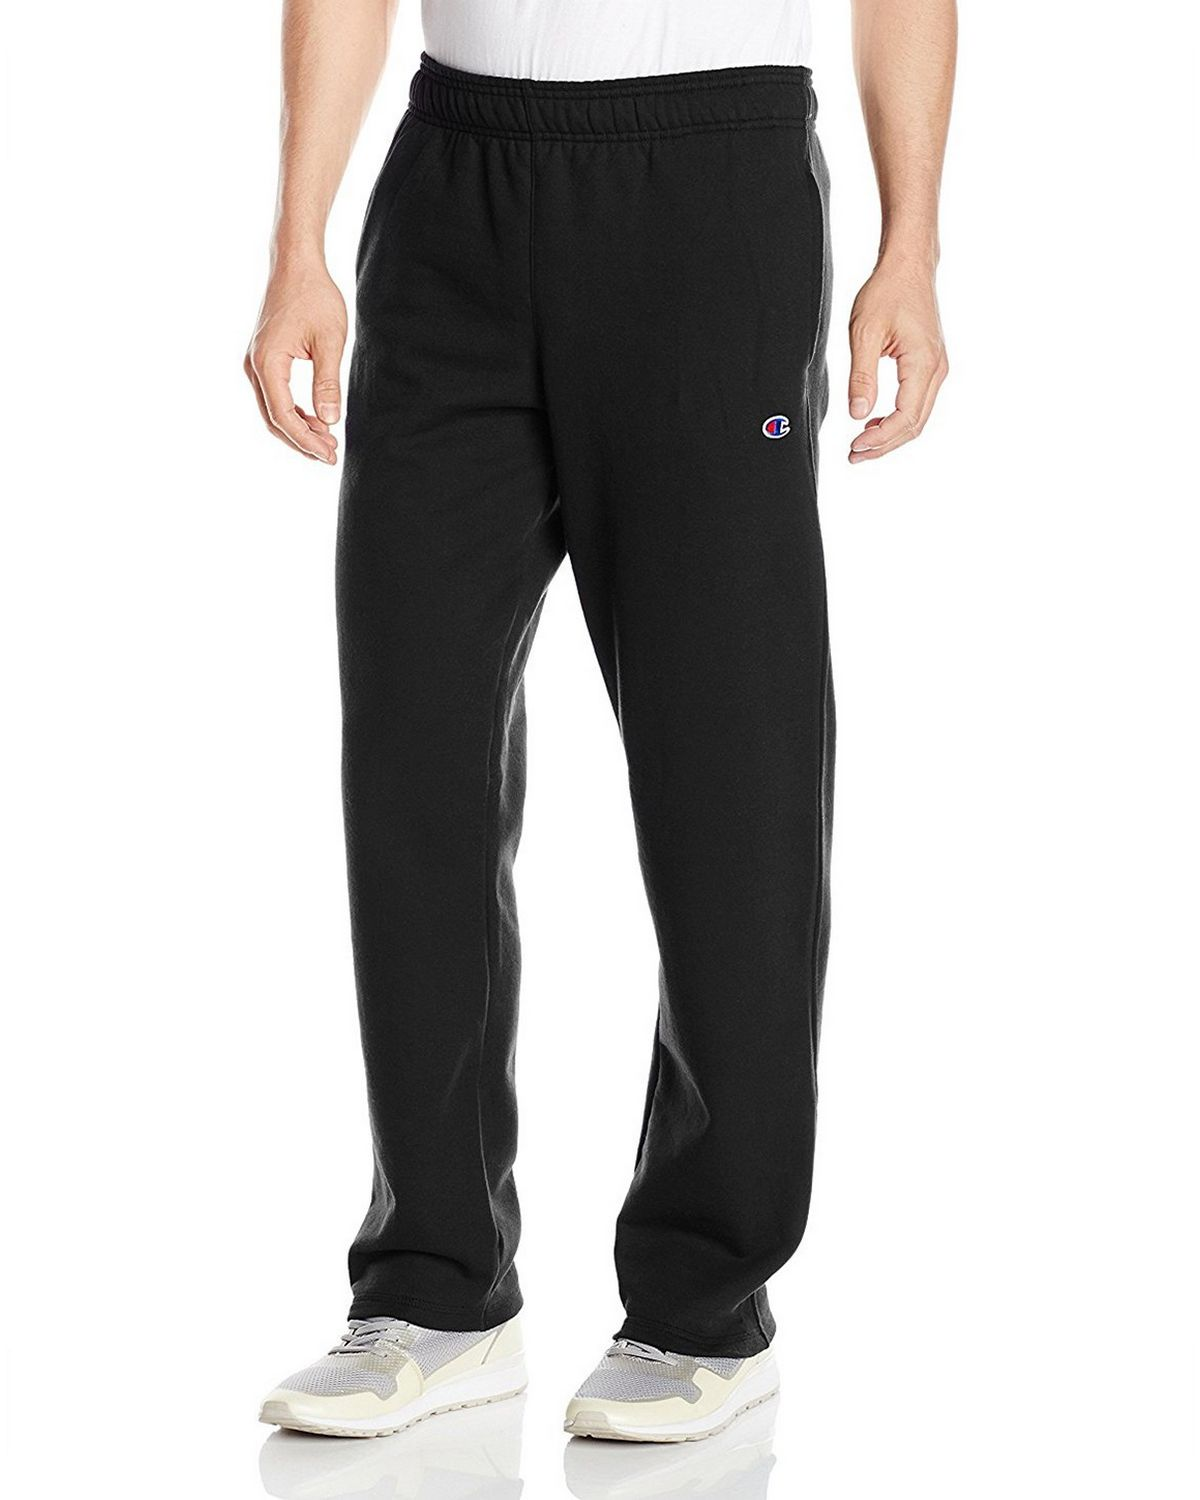 Champion P0893 Mens Fleece Open Bottom Pants - Black - M P0893